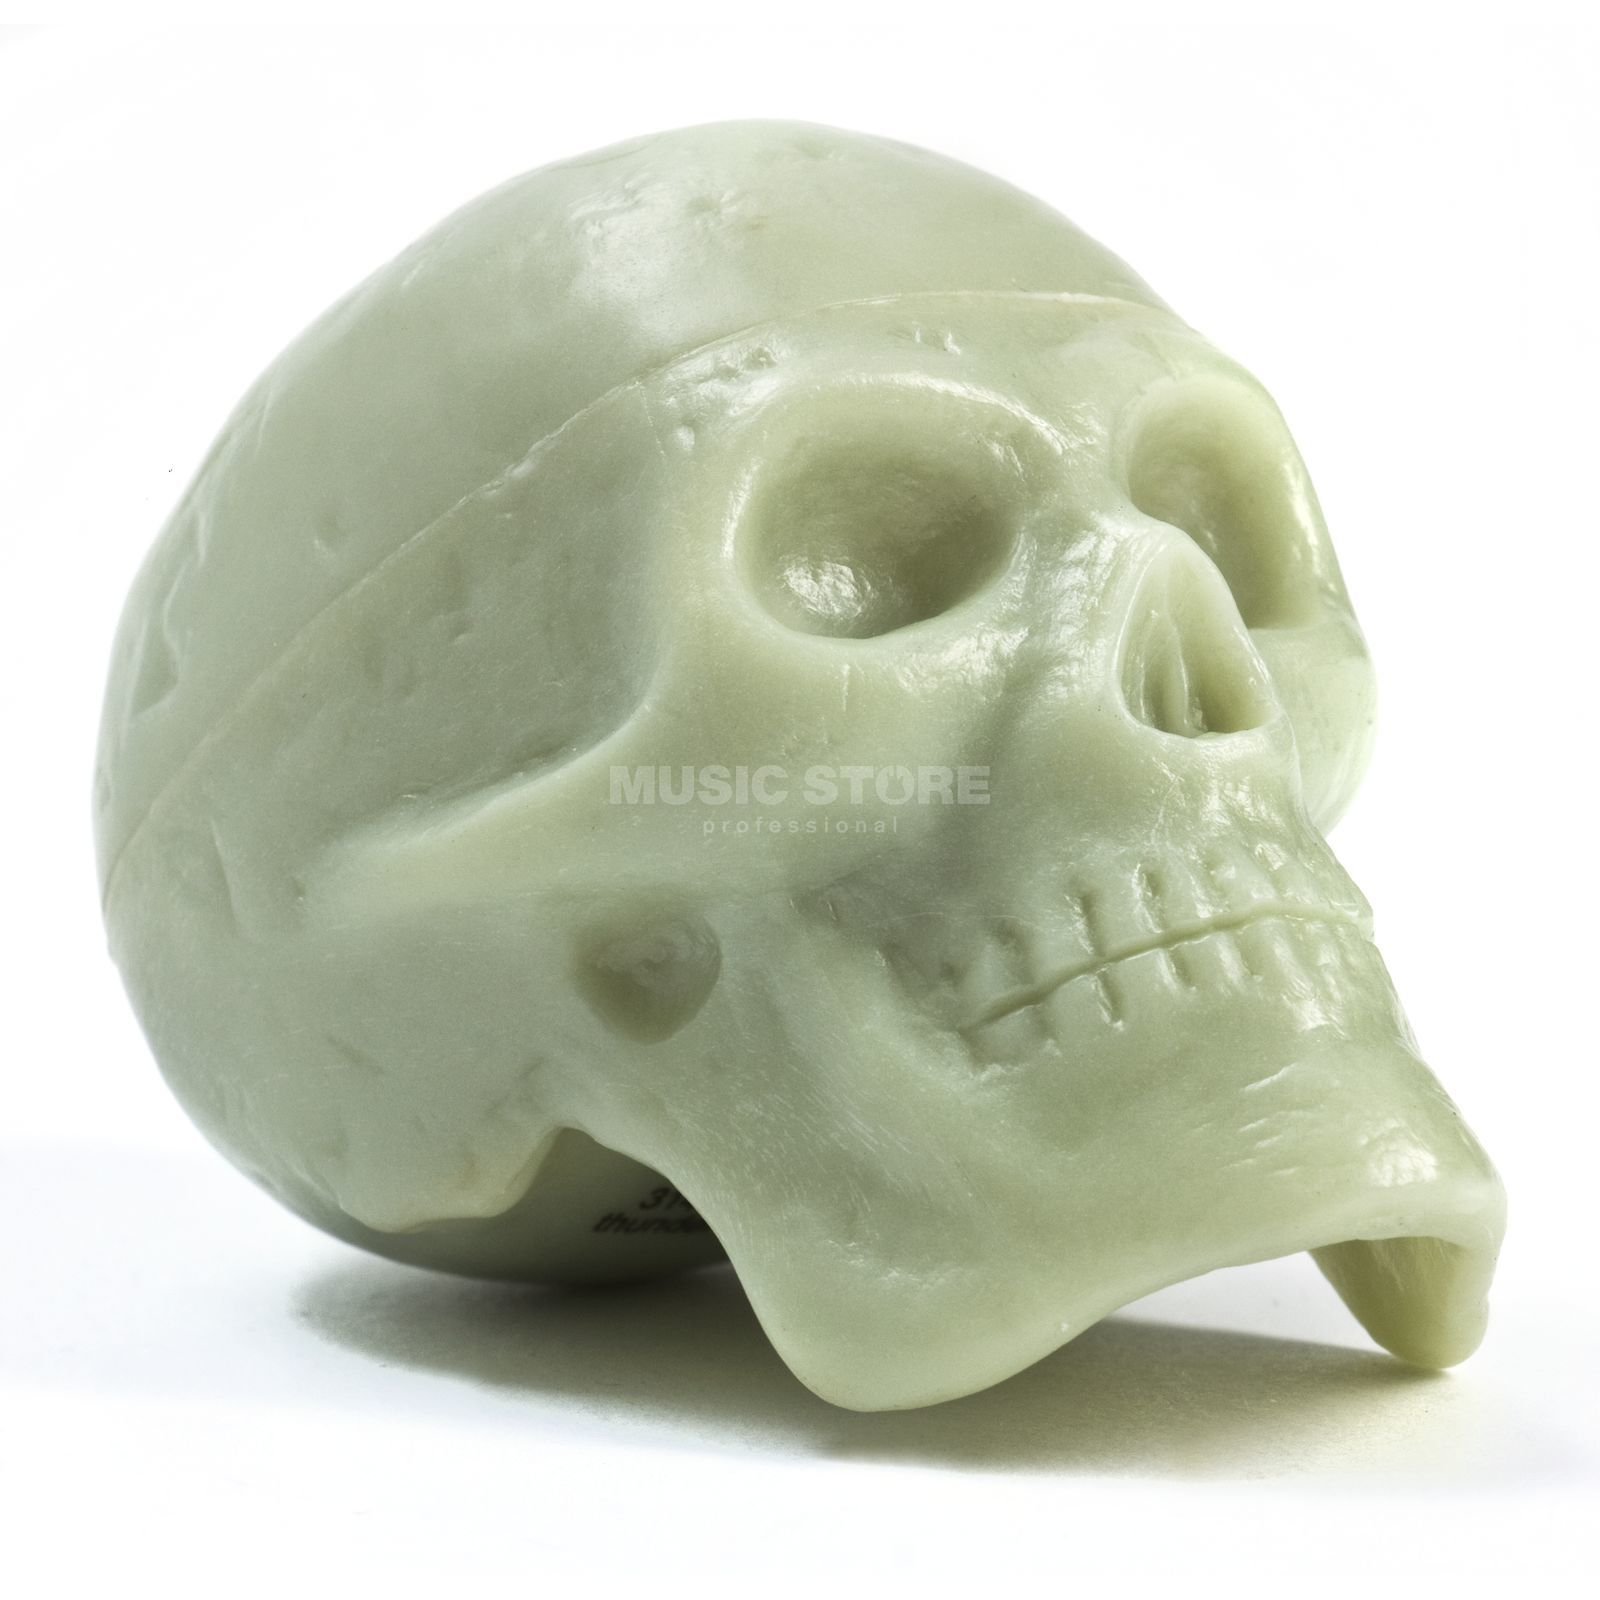 Beadbrains Skull Rhythm Shaker, Glow in the Dark Produktbild